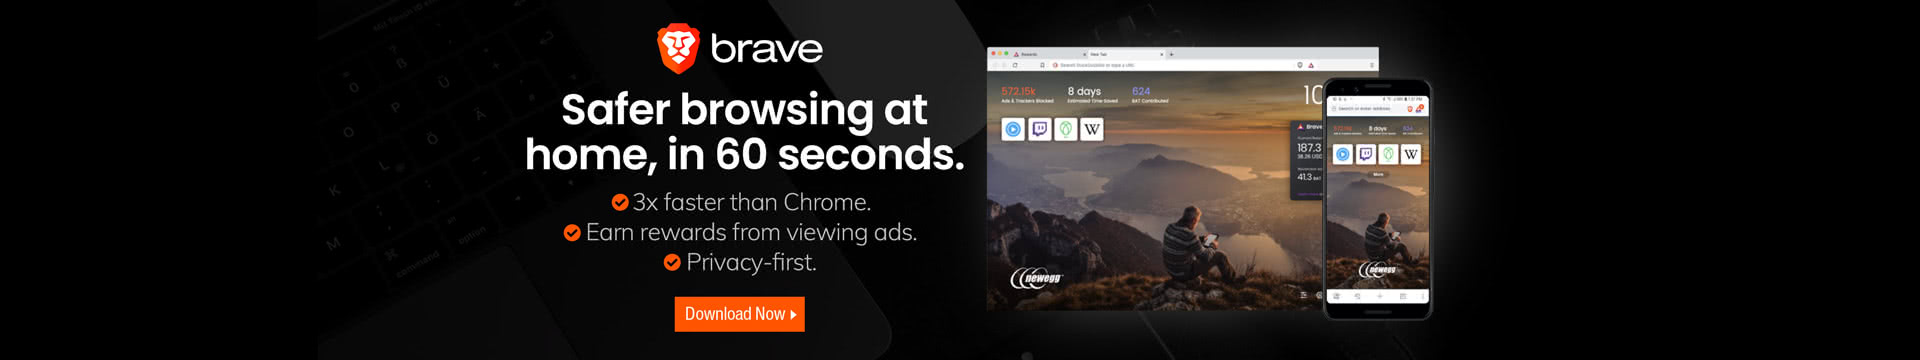 Safer browsing at home, in 60 seconds